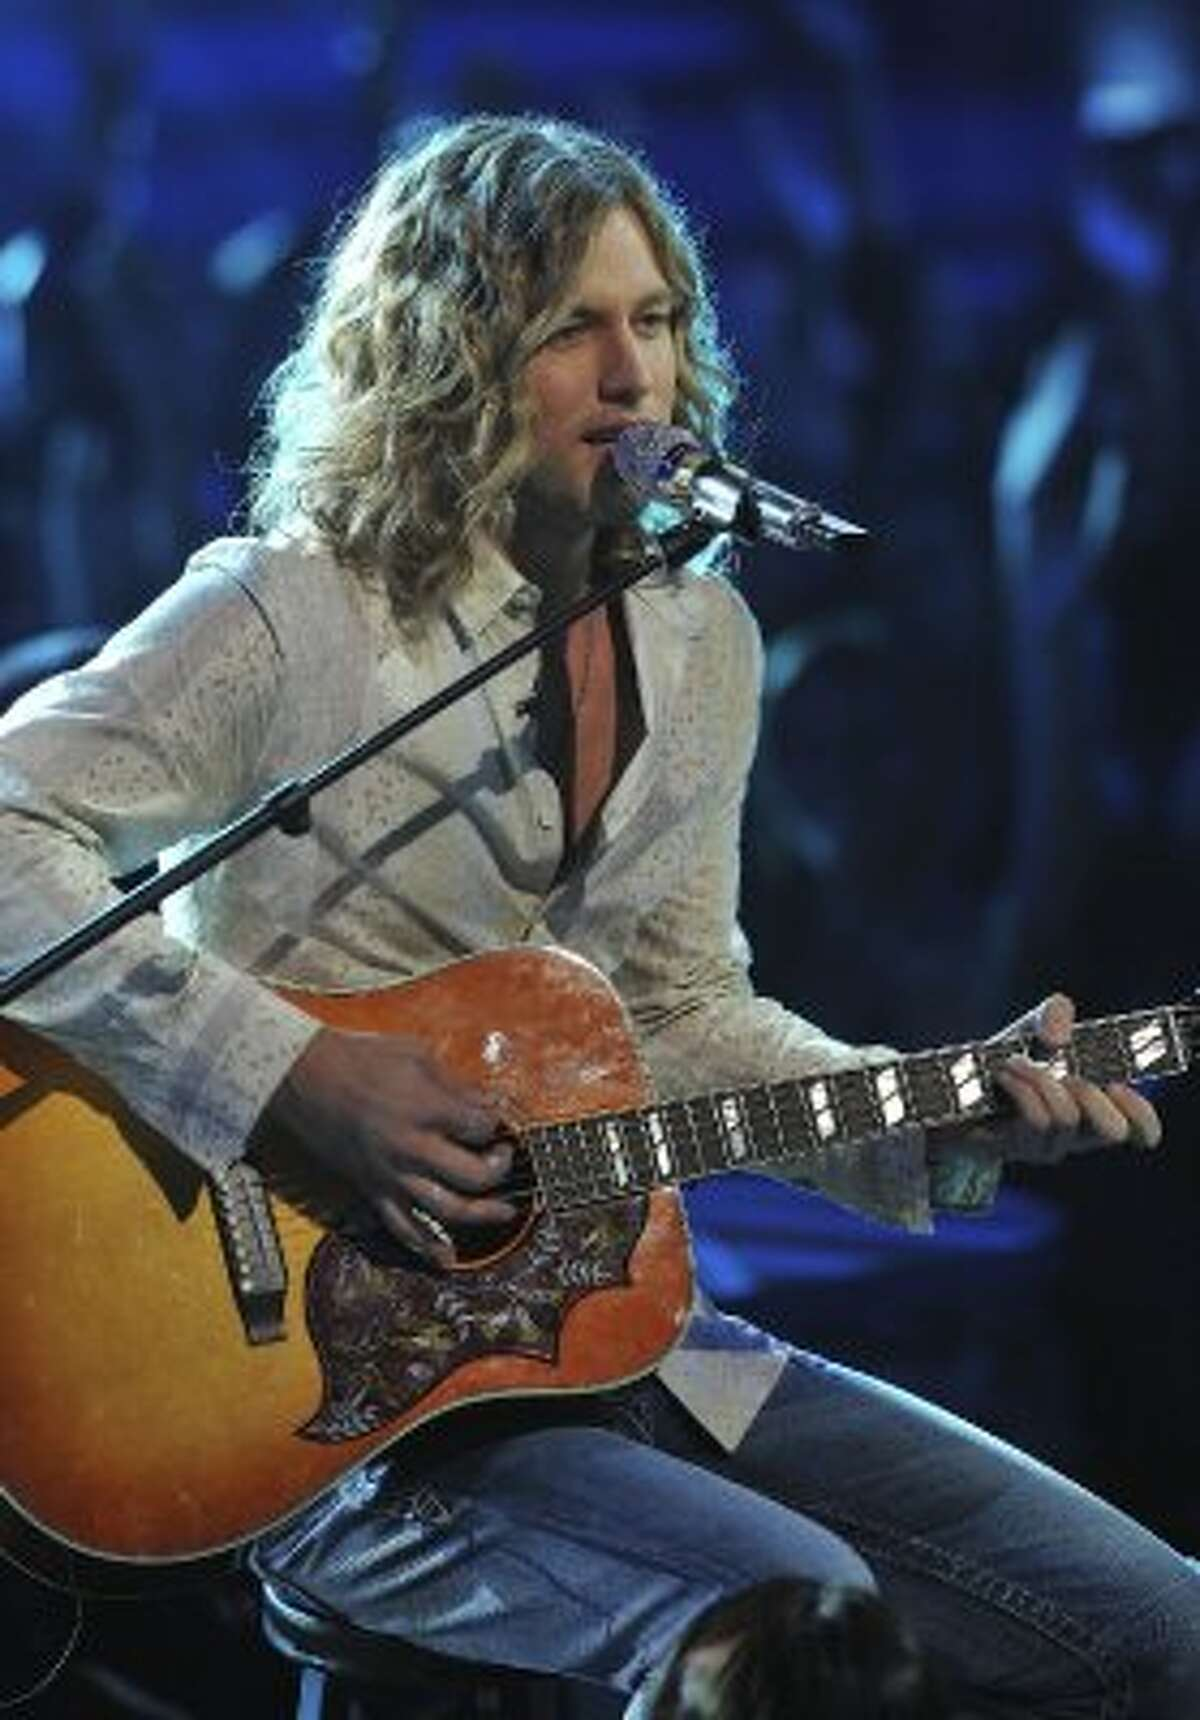 Casey James is from Fort Worth.